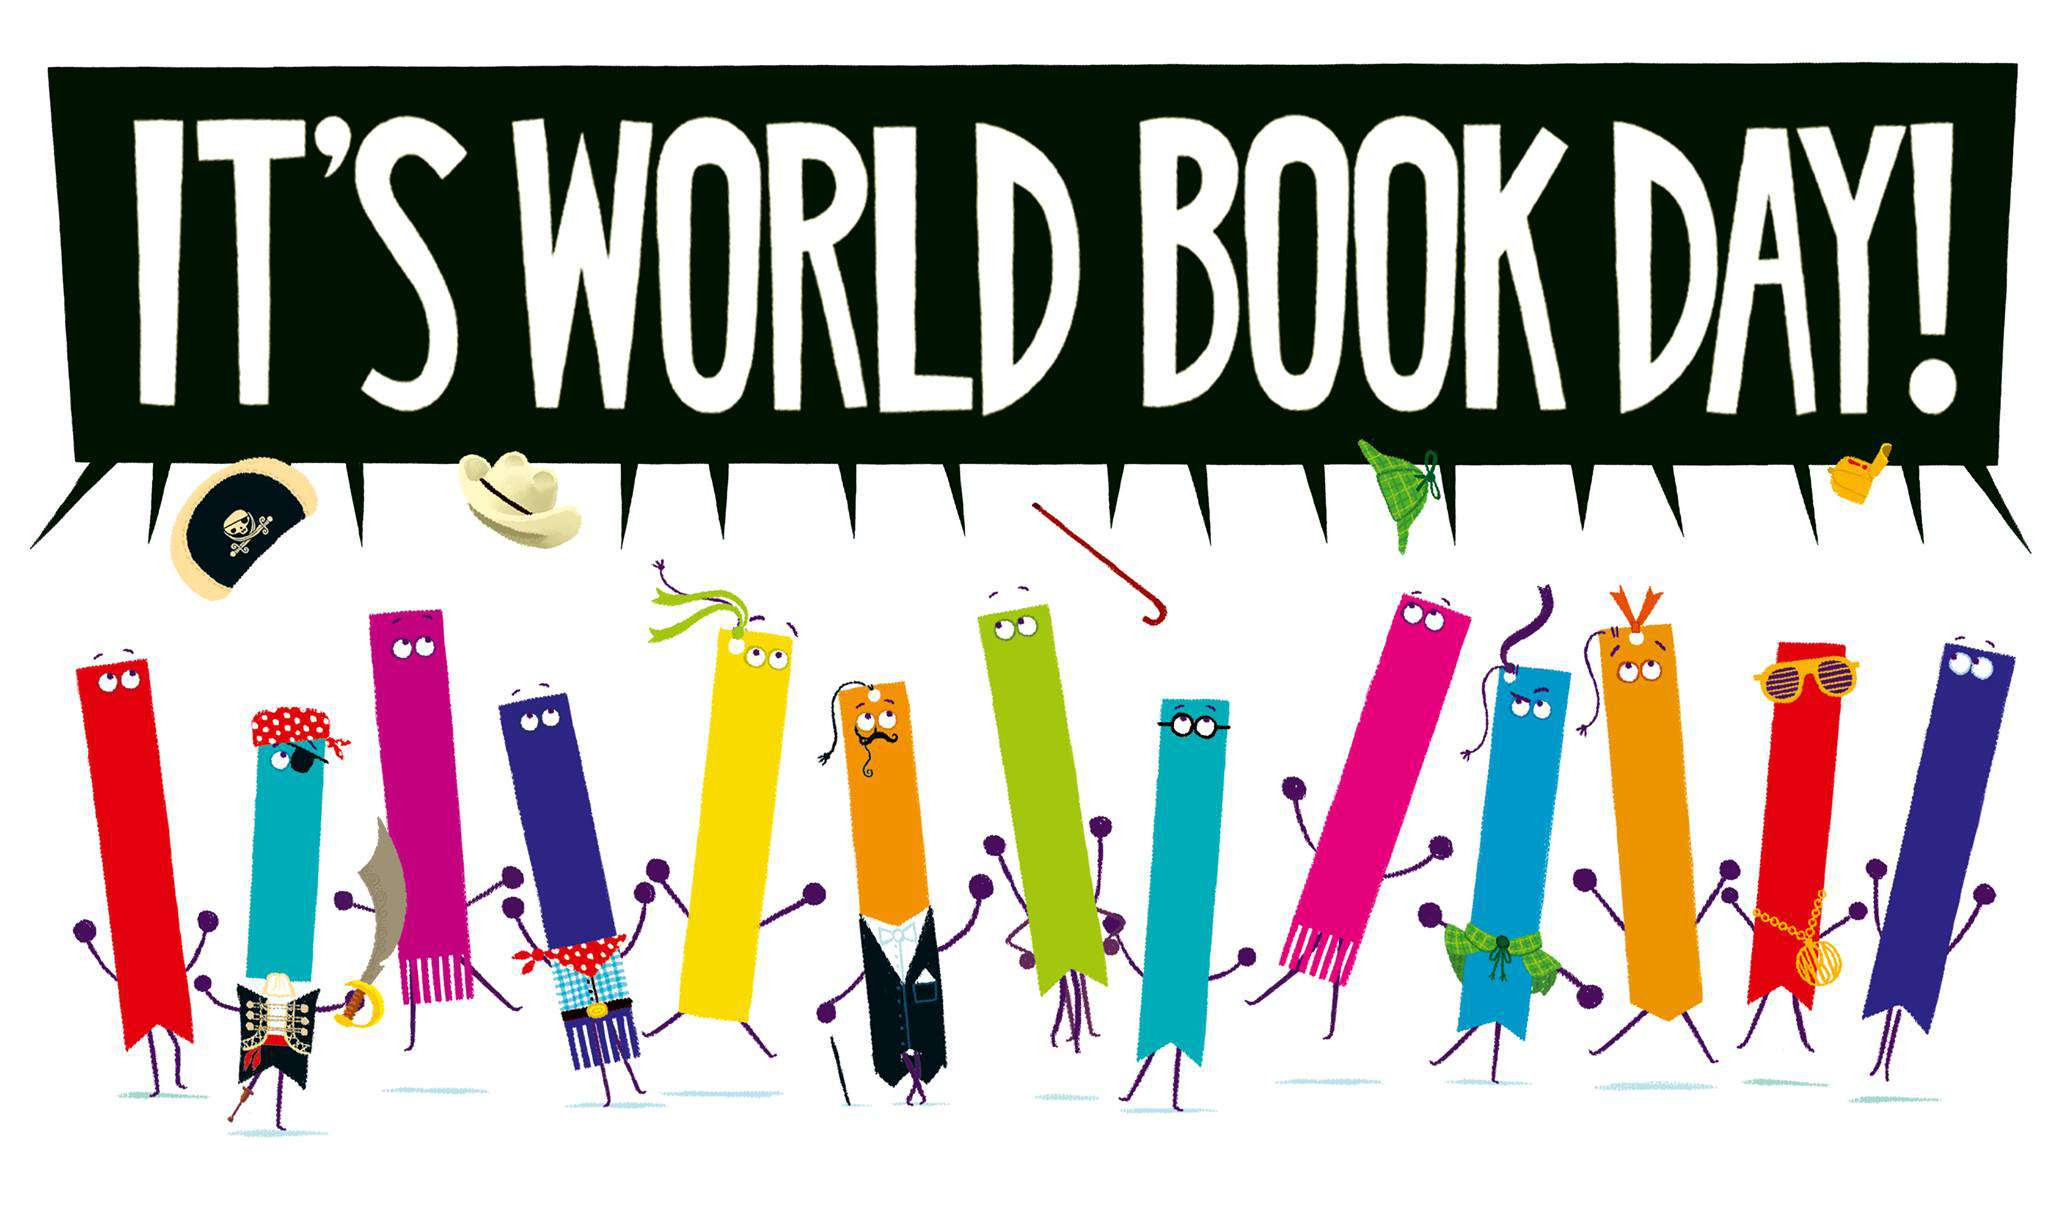 World Book Day Wishes for Instagram